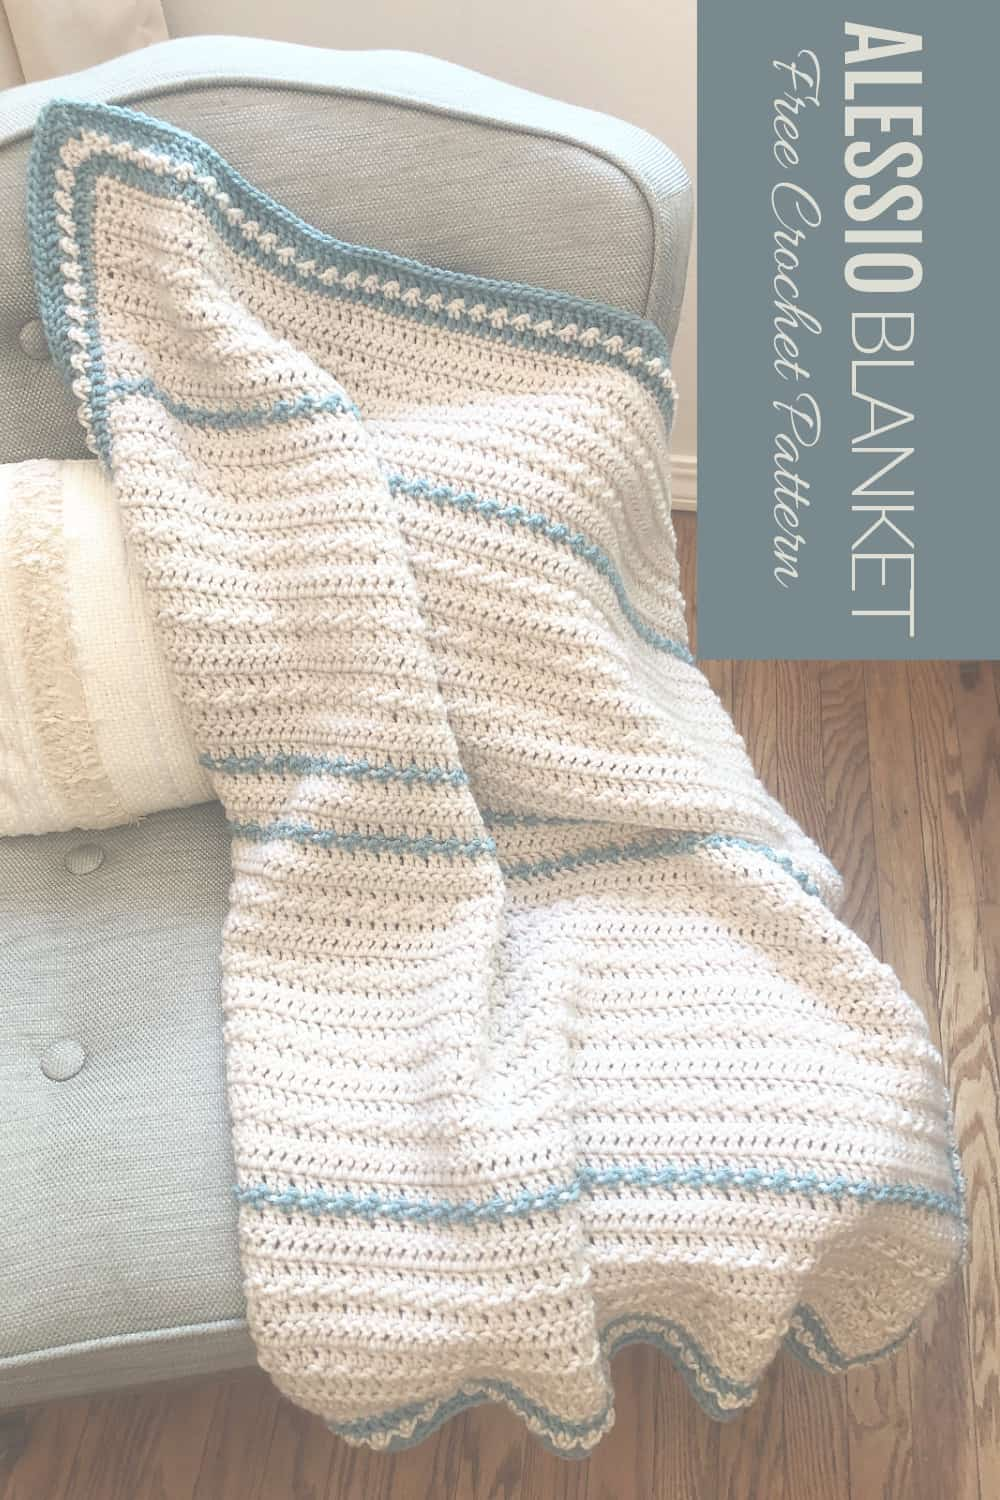 Pin image of crochet baby blanket on chair.